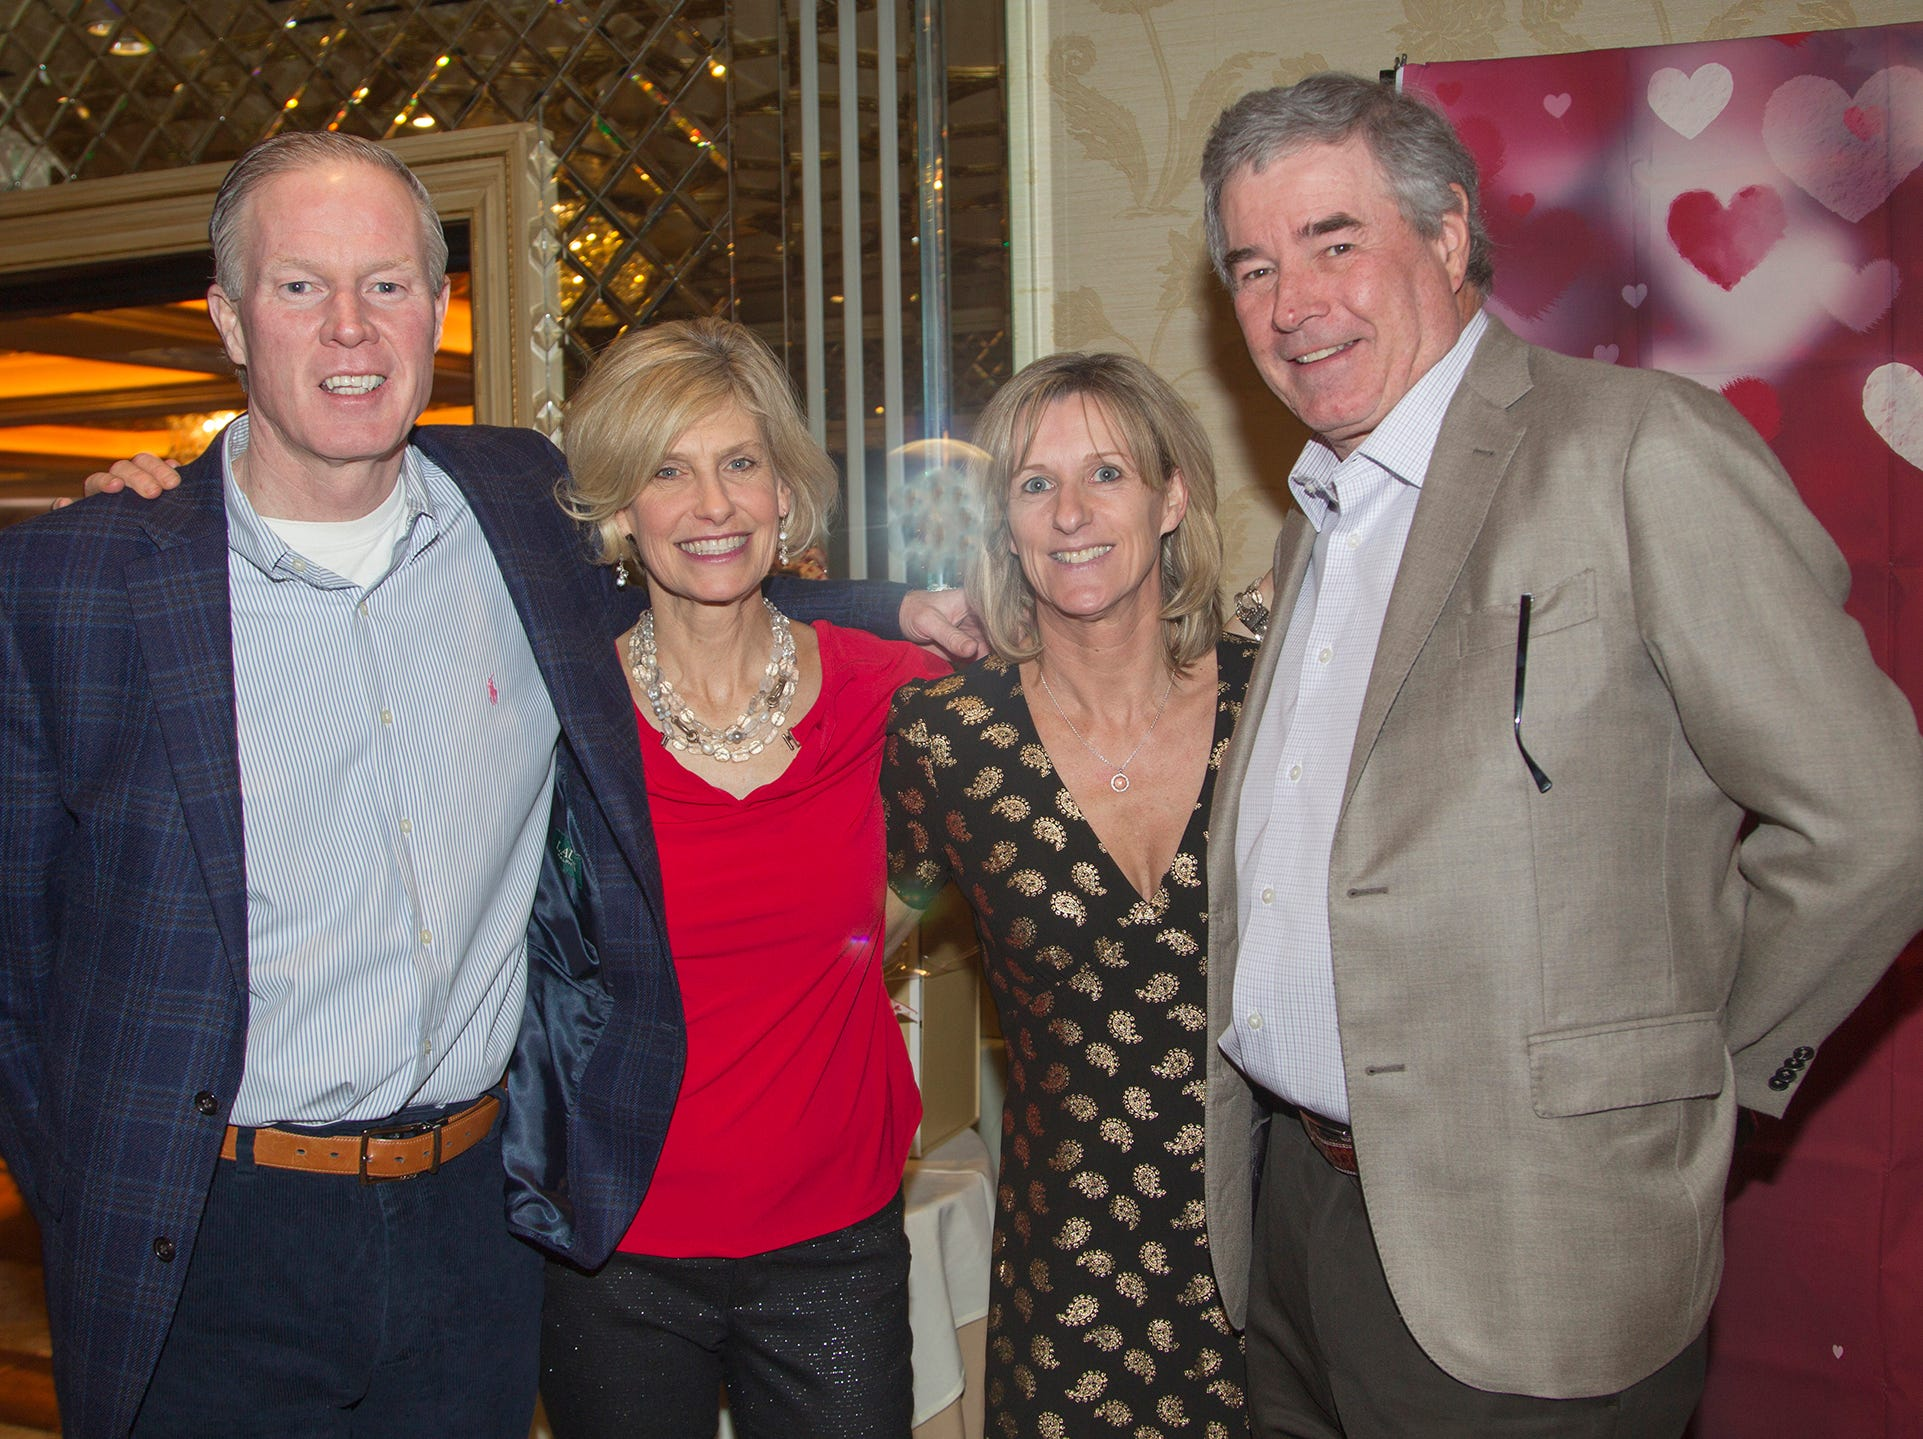 Tom Kelly, Kathy Kelly, Sarah Cunningham, Sean Cunningham. Institute for Educational Achievement (IEA) held its annual Dinner Dance at Seasons in Washington Township. 02/02/2019